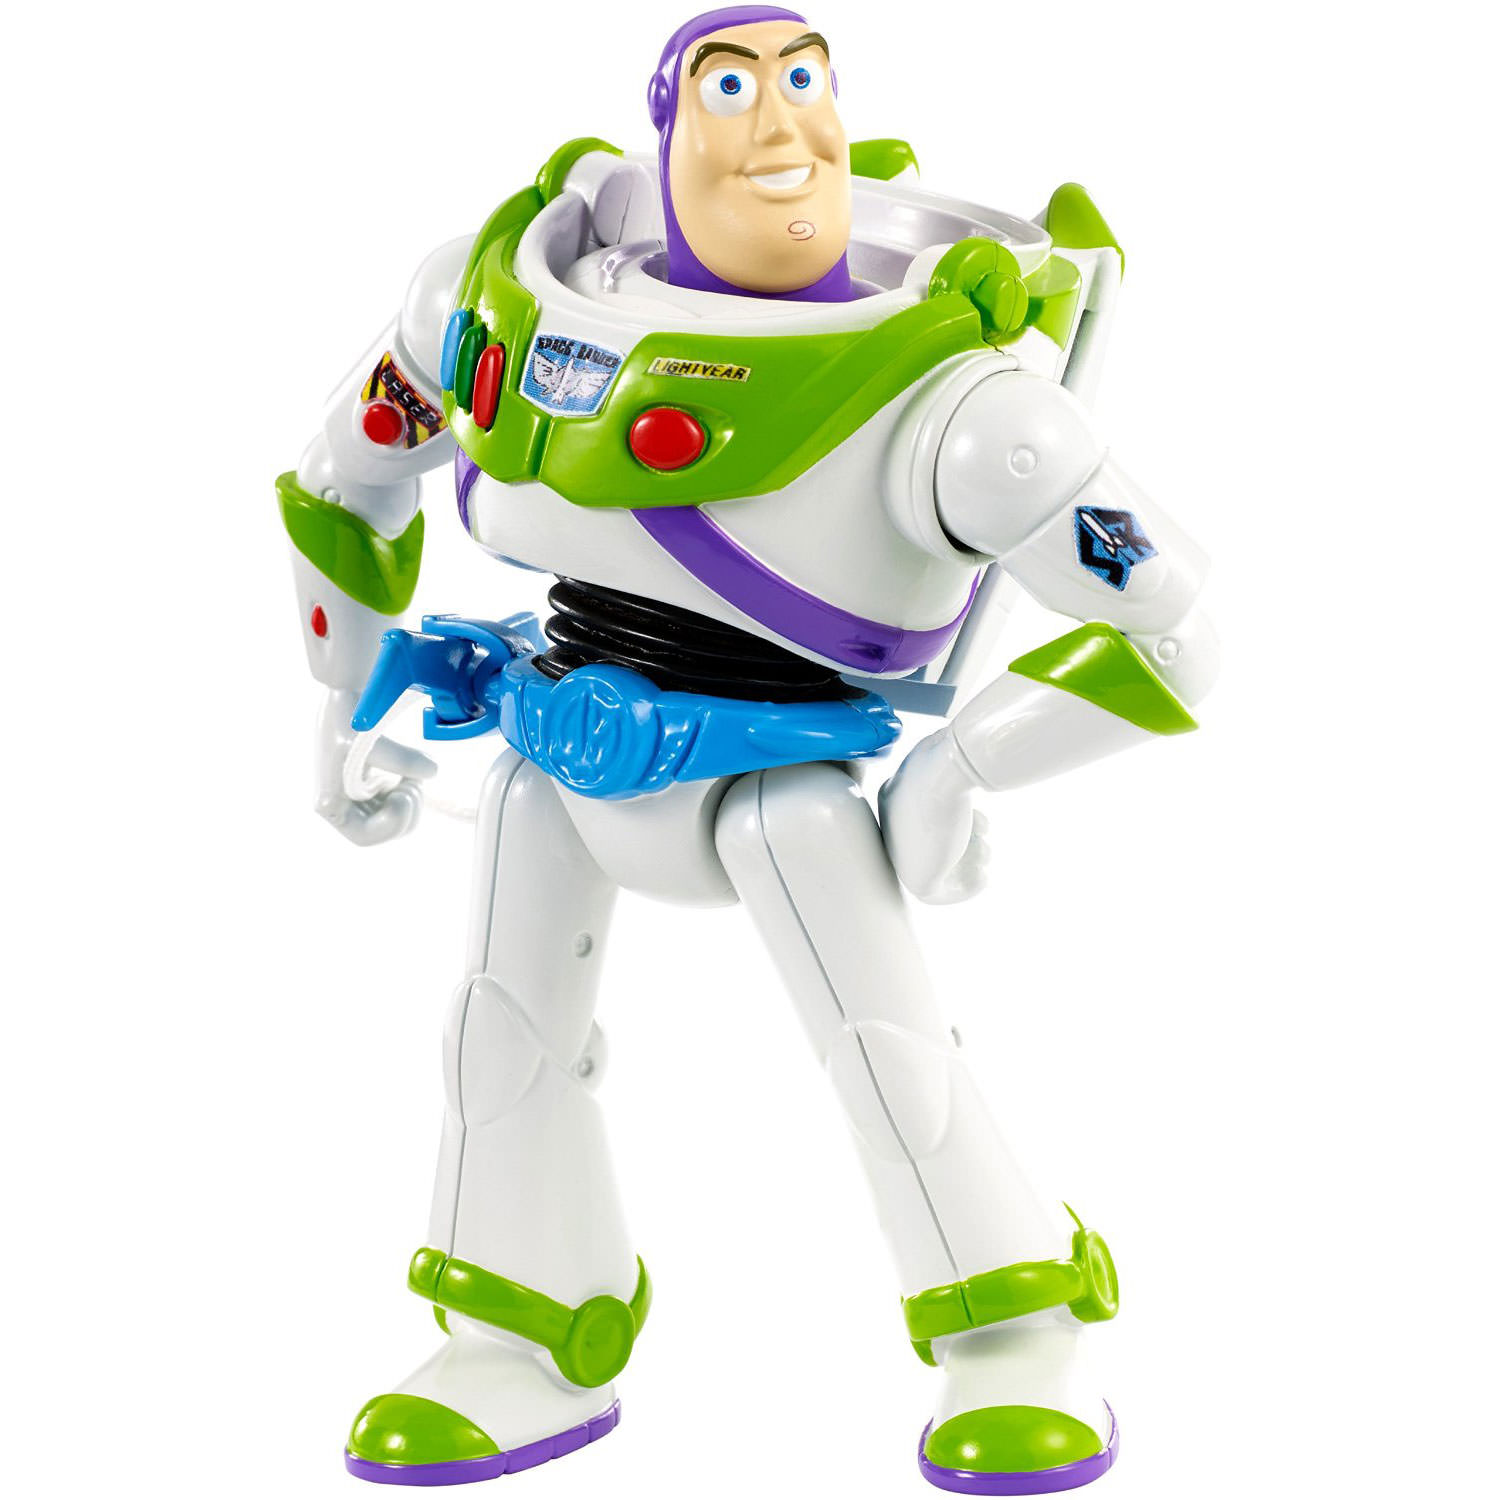 Toy Story 4 Toys : Disney pixar toy story quot figure buzz with belt